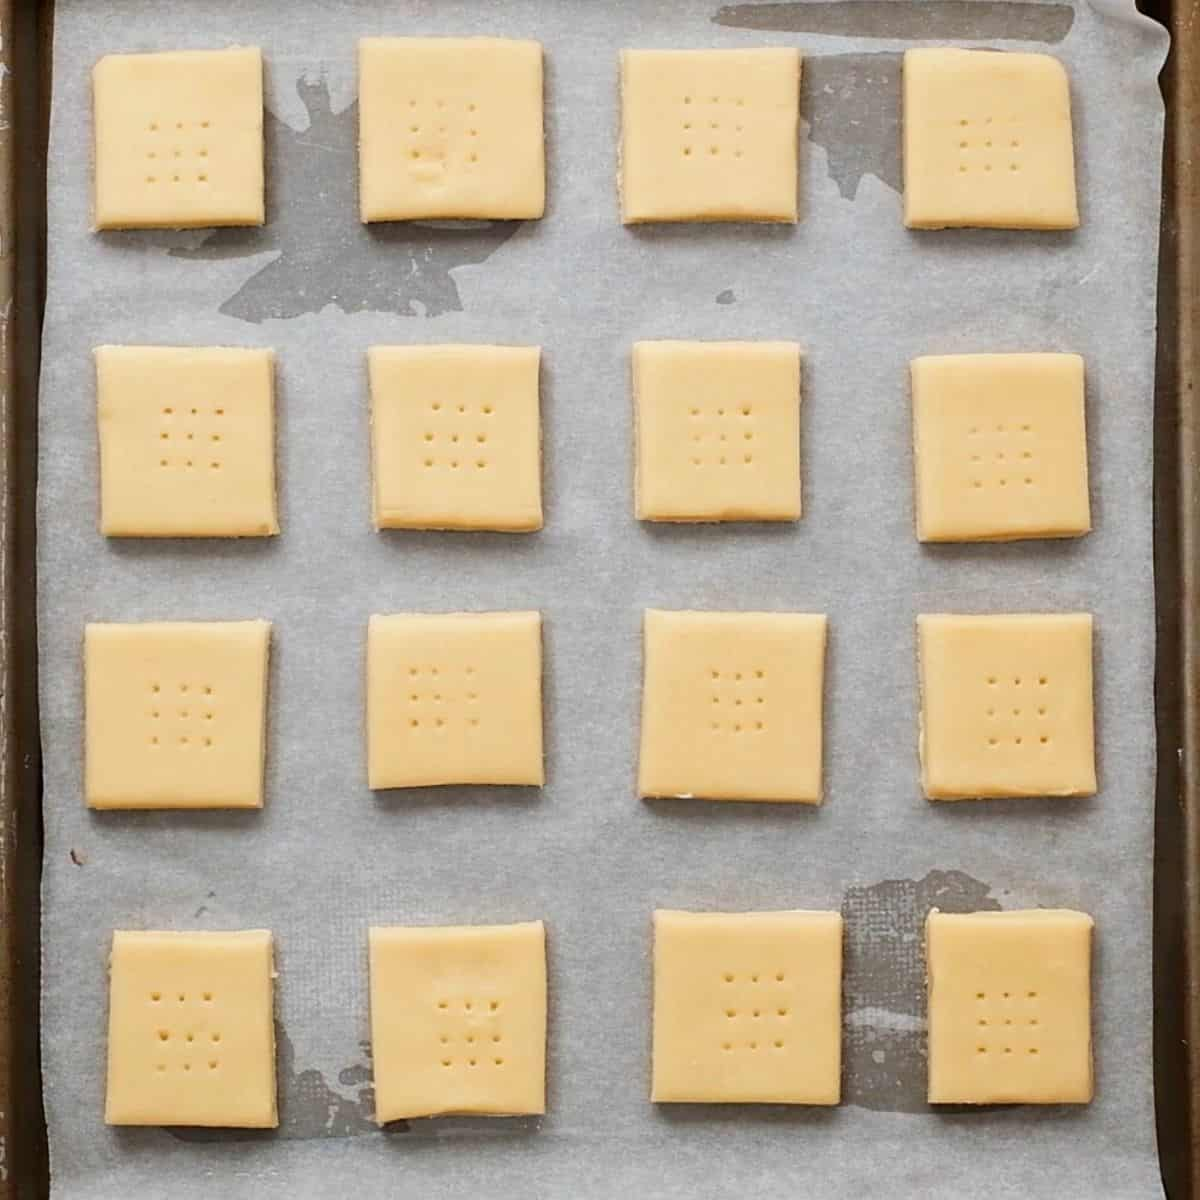 Shortbread cookies spaced out baking sheet.